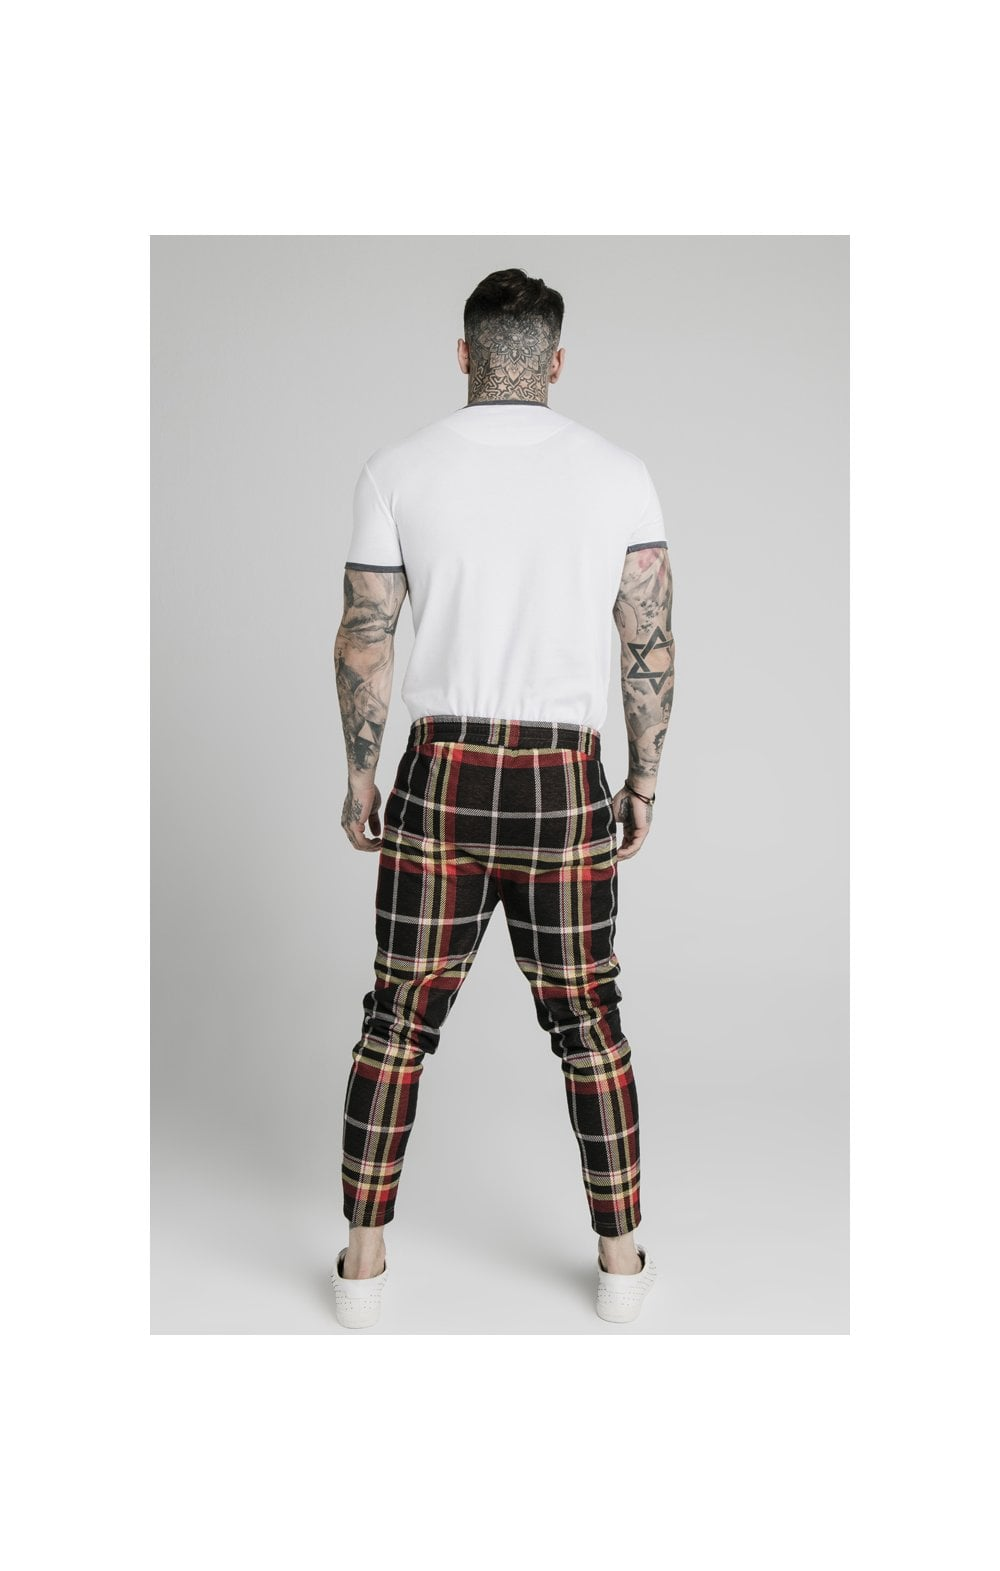 SikSilk Smart Cuff Pants - Mutil Grain Check (5)